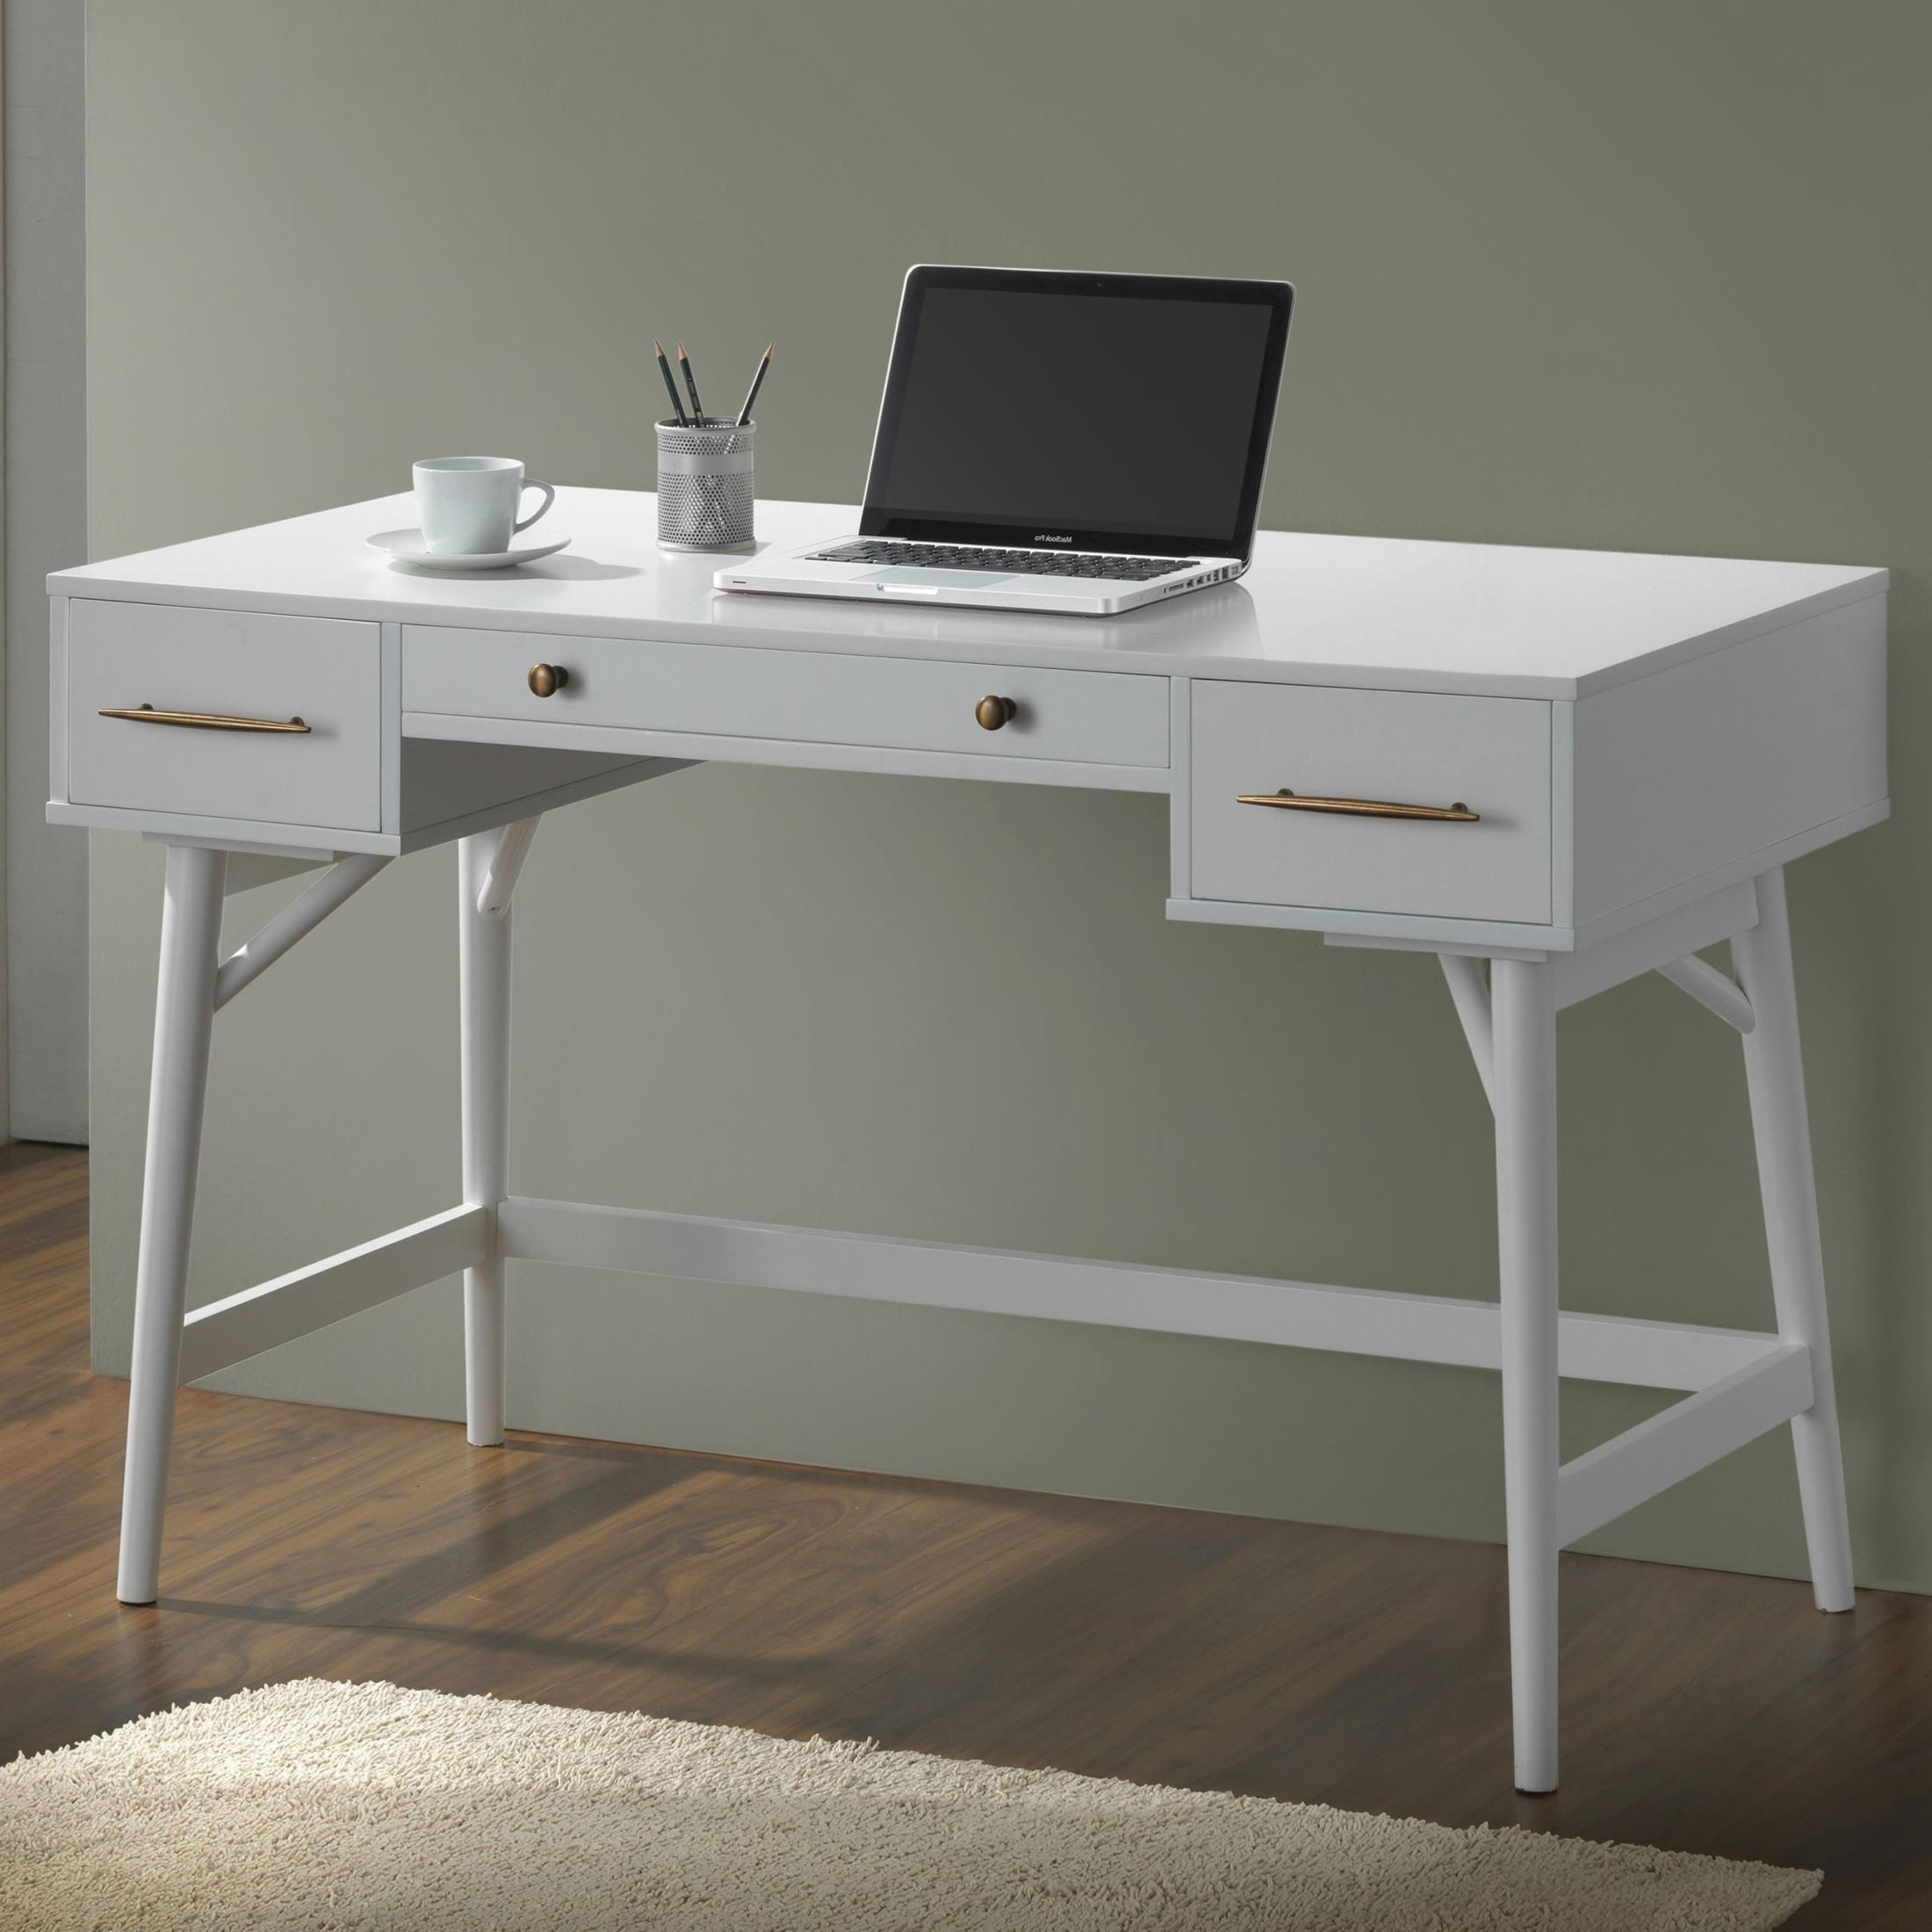 800745 White Writing Desk from Coaster (800745) | Coleman ...